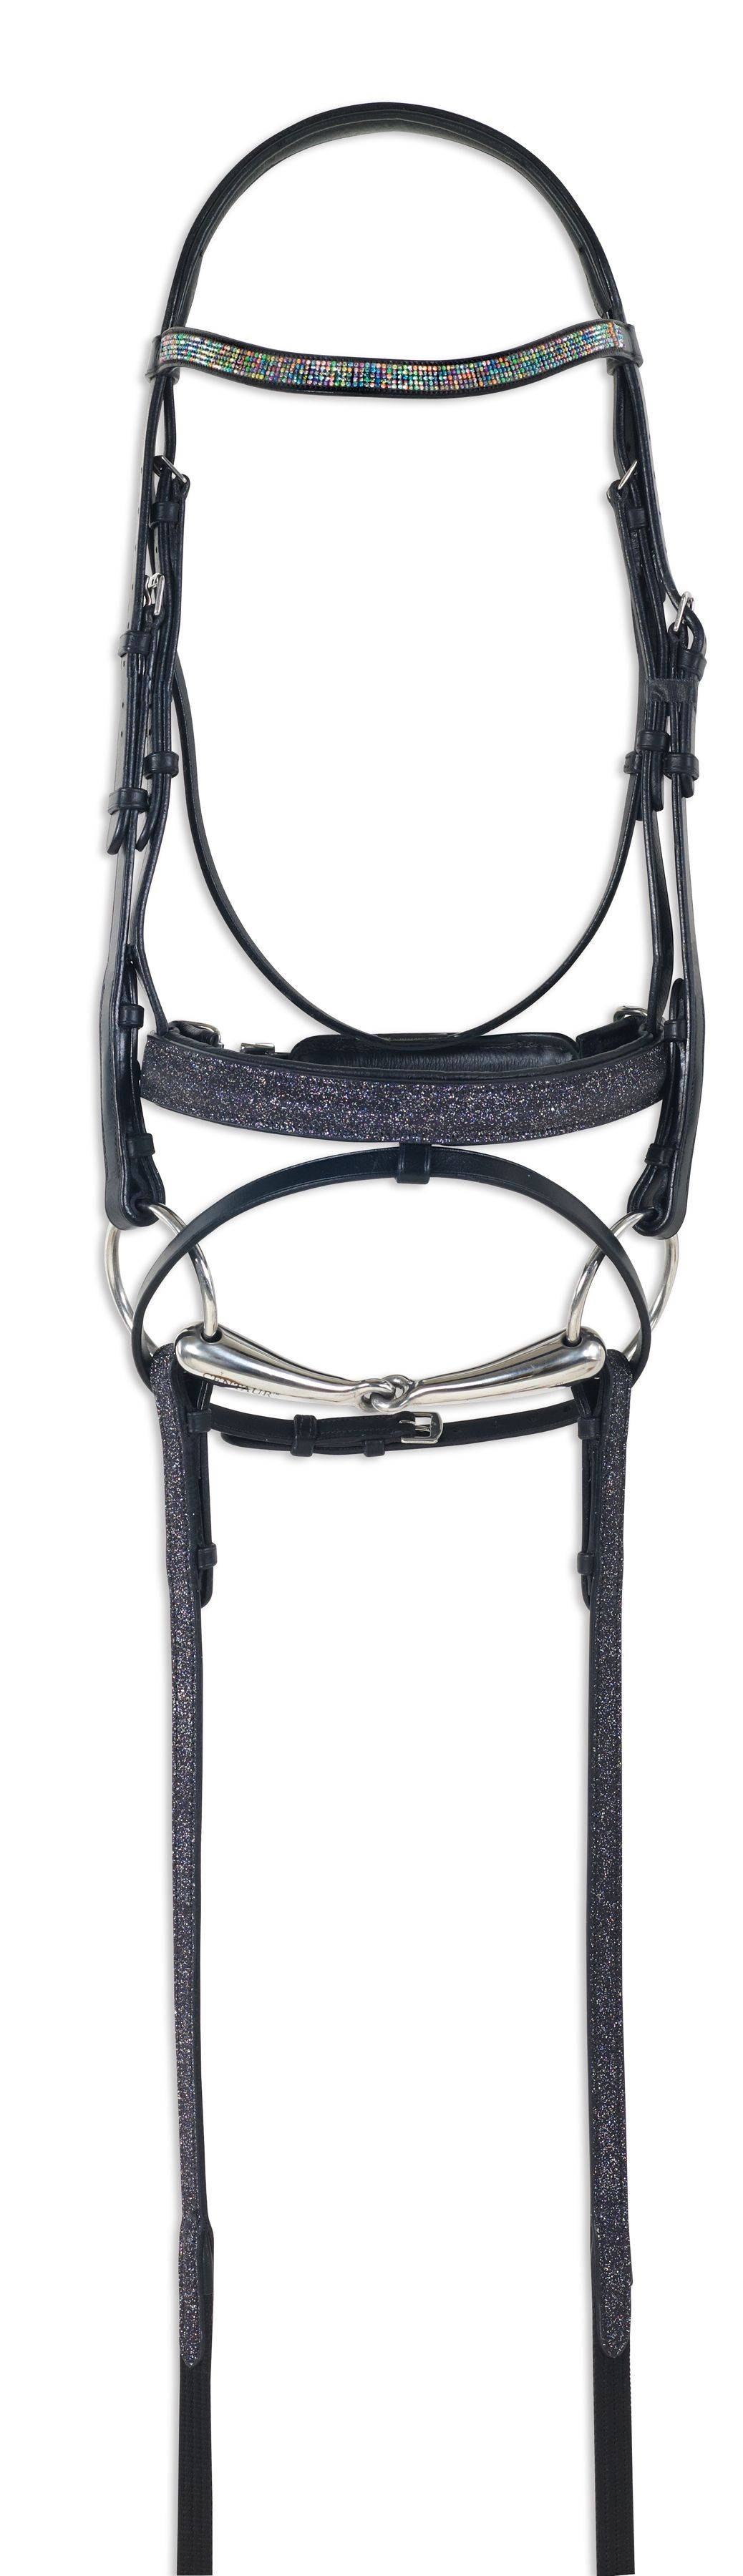 Ovation Fantasia Dressage Bridle with Web Reins